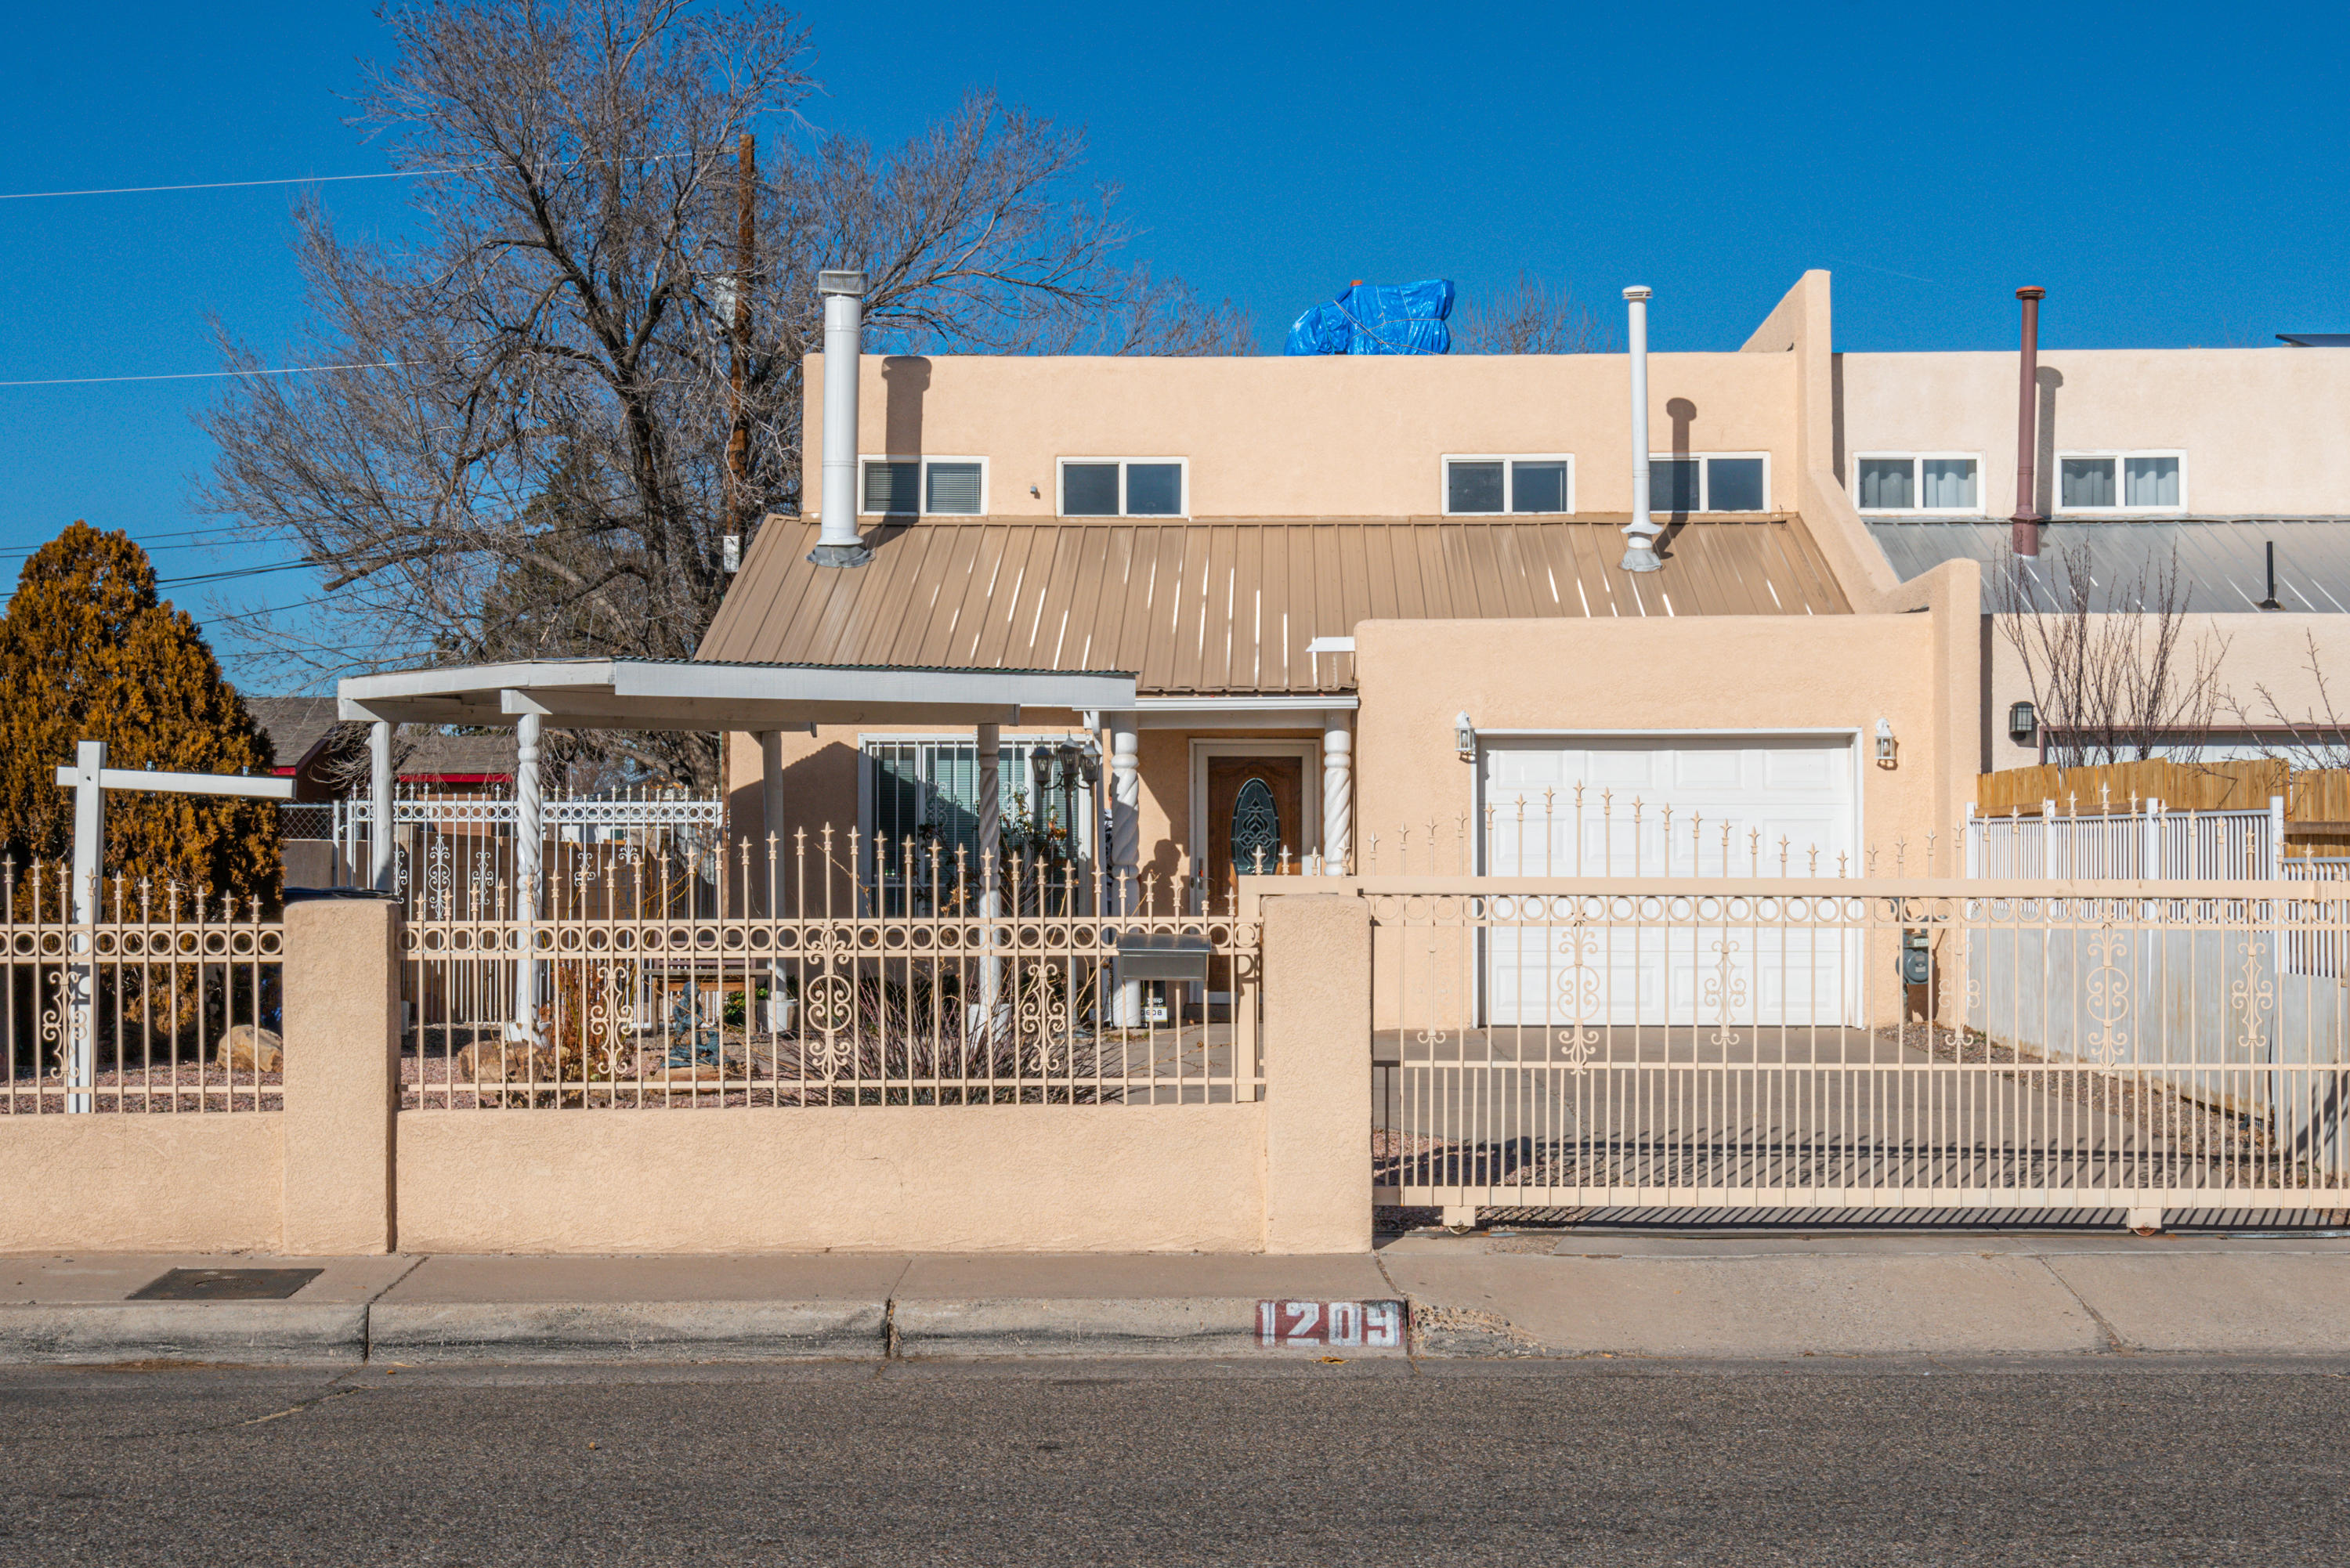 Cozy North Valley town home! Possible 3 bedrooms or 2 bedrooms/office. With living space open to the kitchen.  New Metal roof and freshly painted throughout the home. Separate carport in addition to garage.